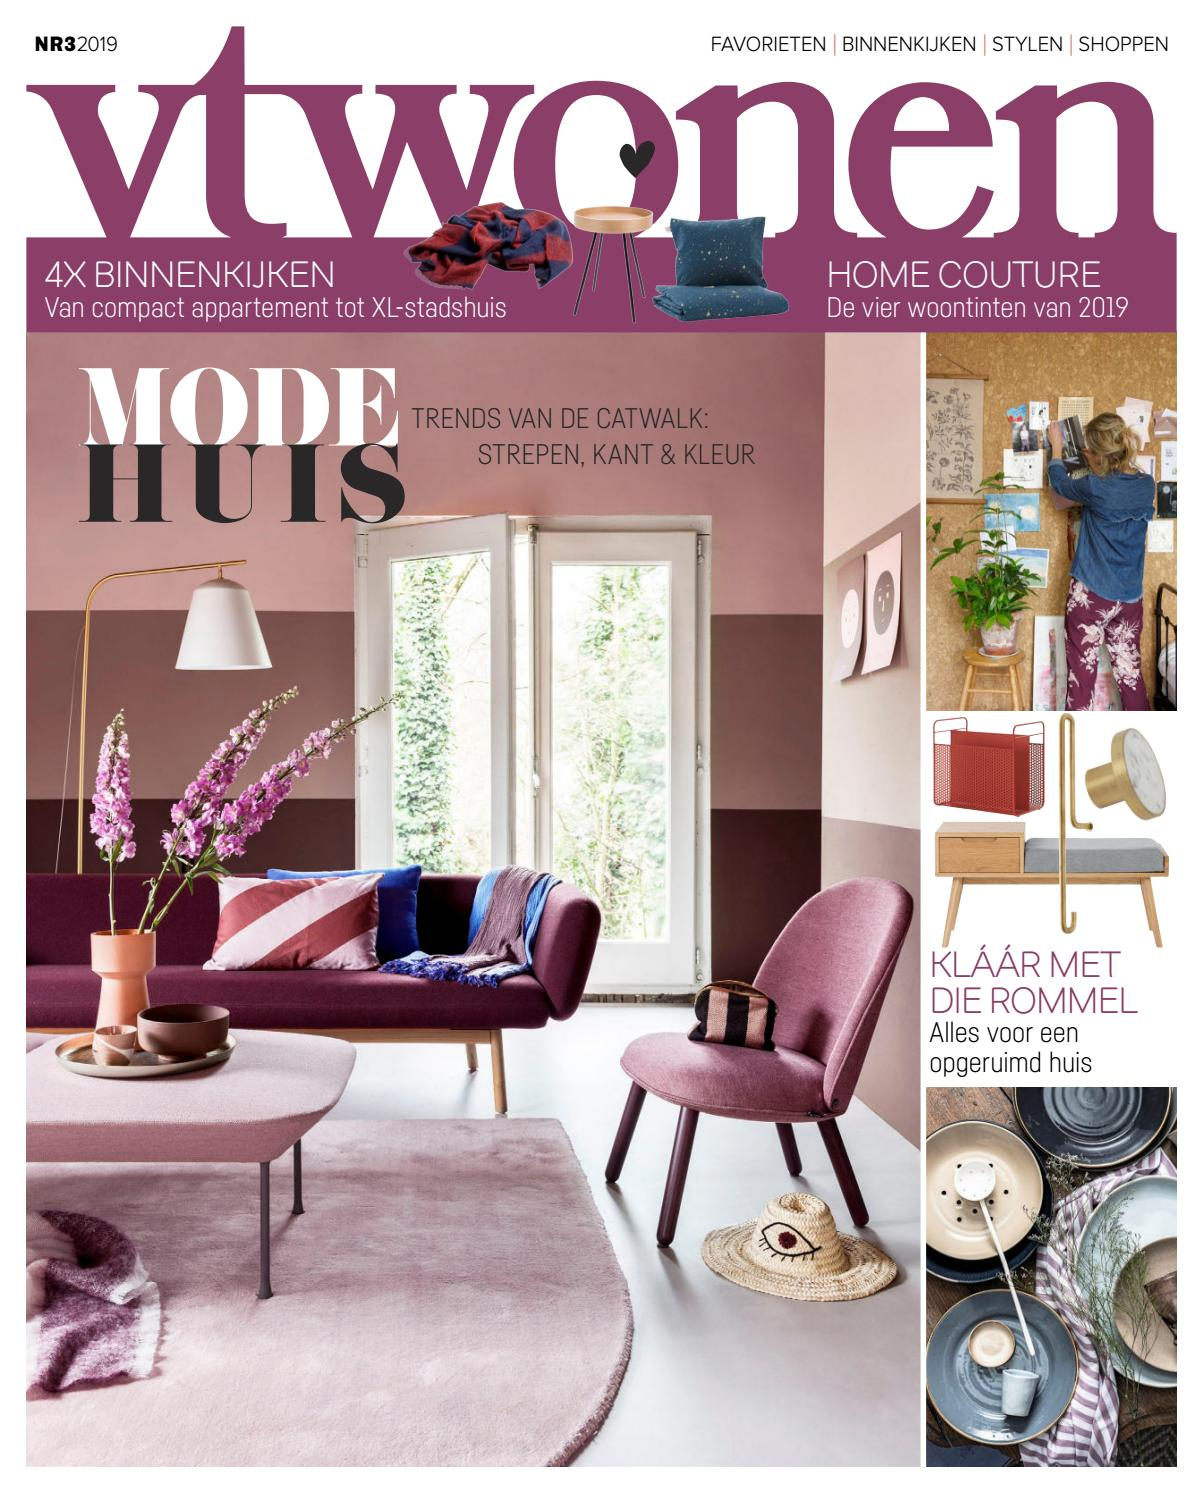 965117e7df8 vtwonen 03-2019 by Home Deco / Sanoma - issuu